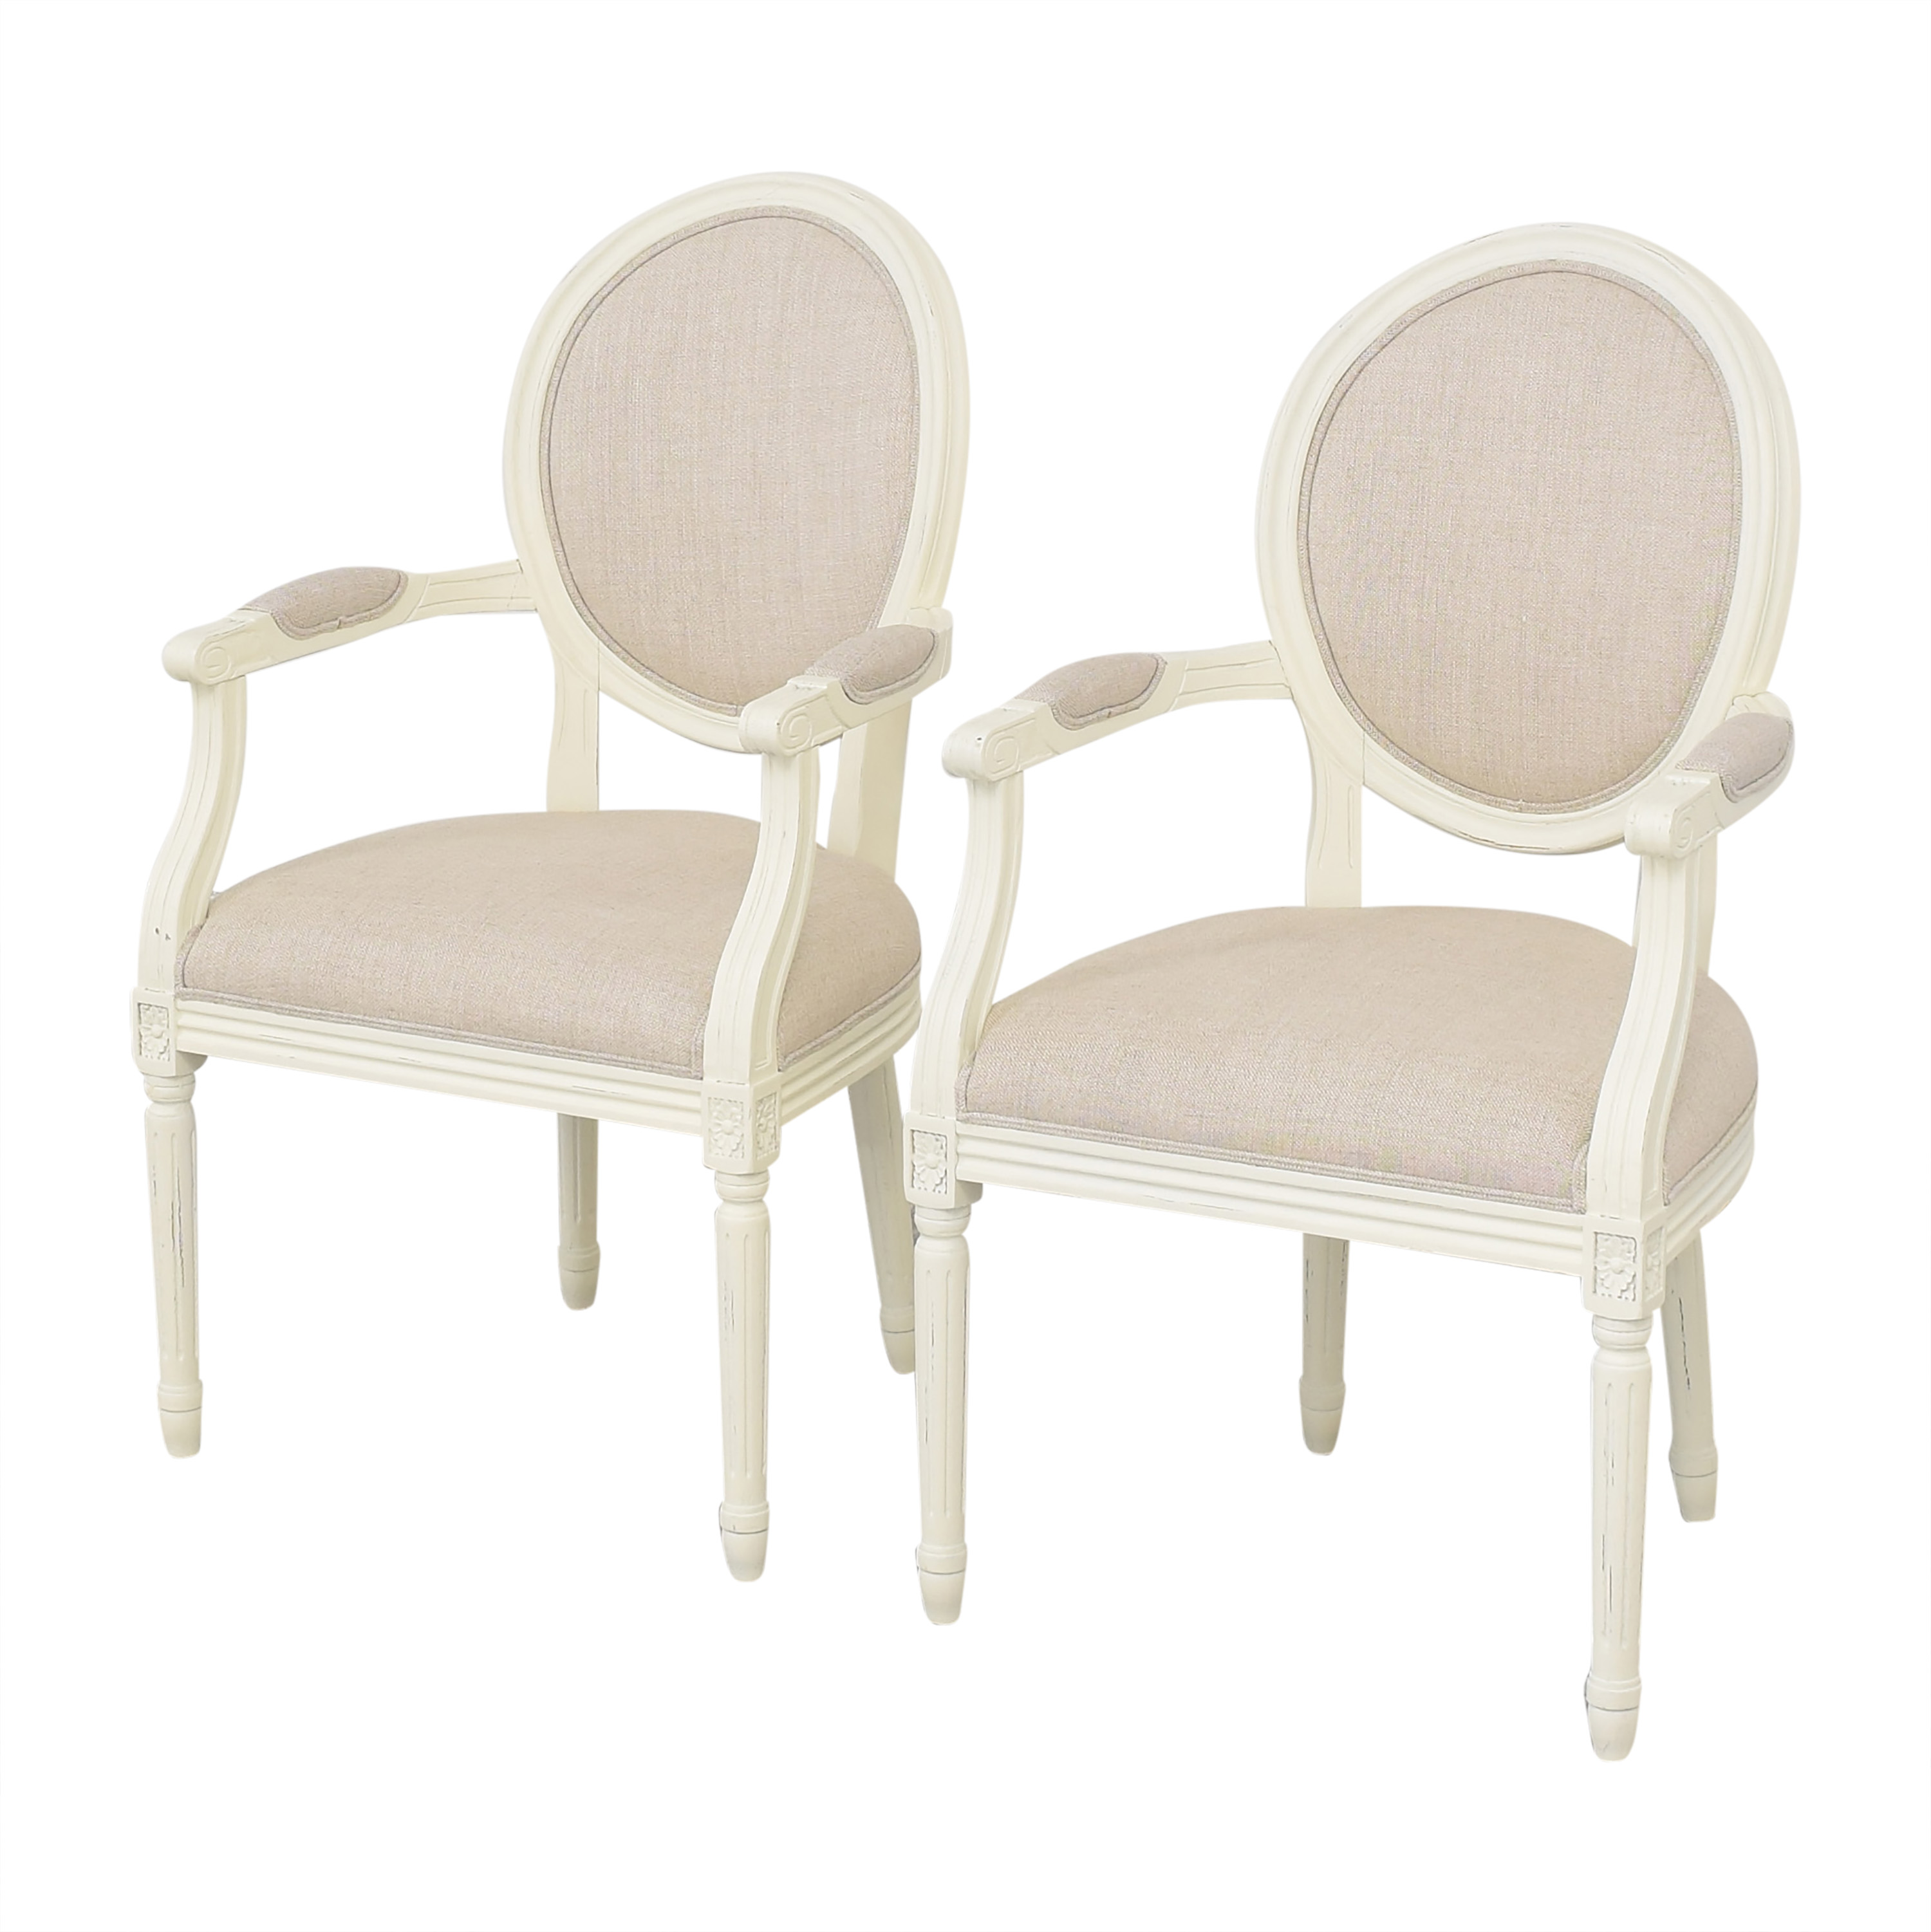 Restoration Hardware Restoration Hardware Vintage French Round Armchairs